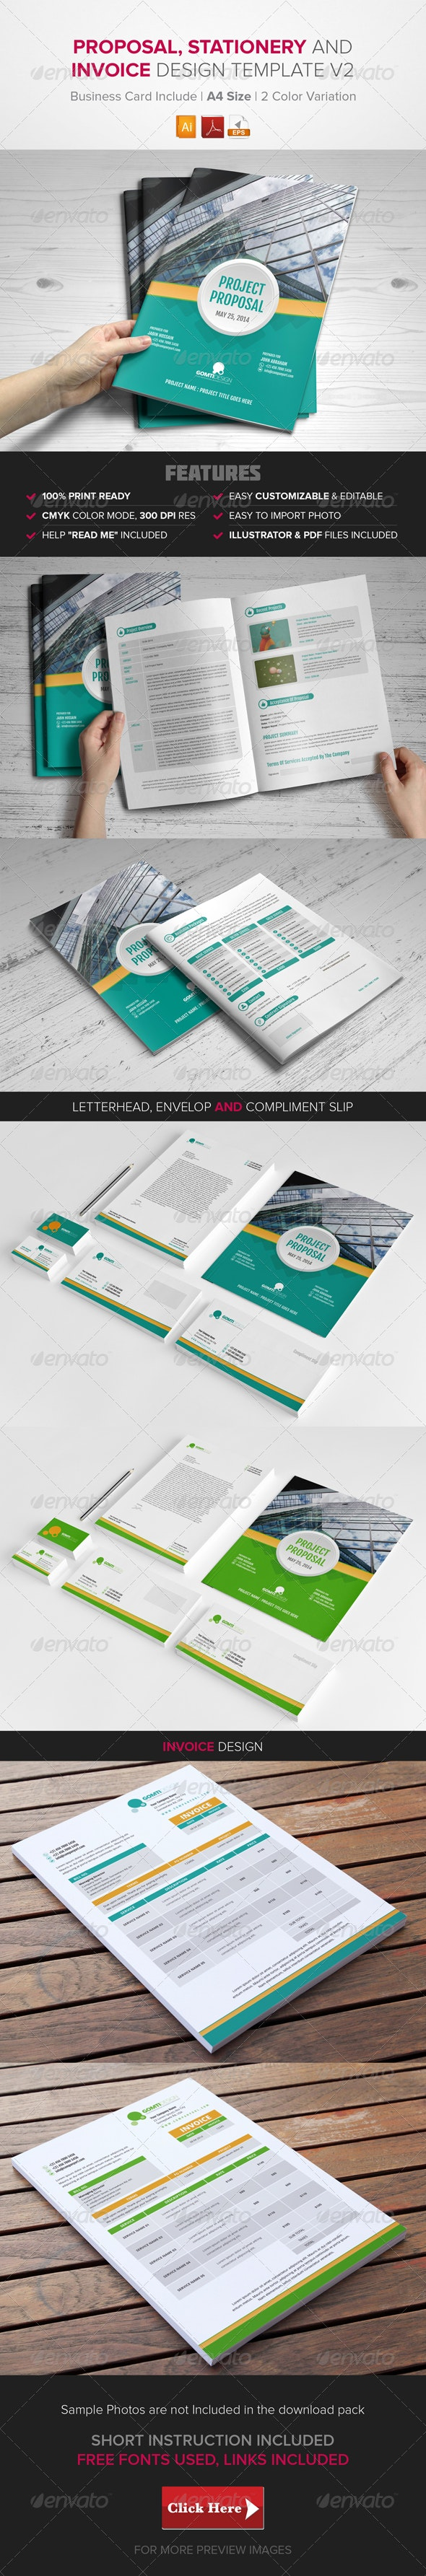 Proposal, Stationary & Invoice Design Template v2 - Stationery Print Templates